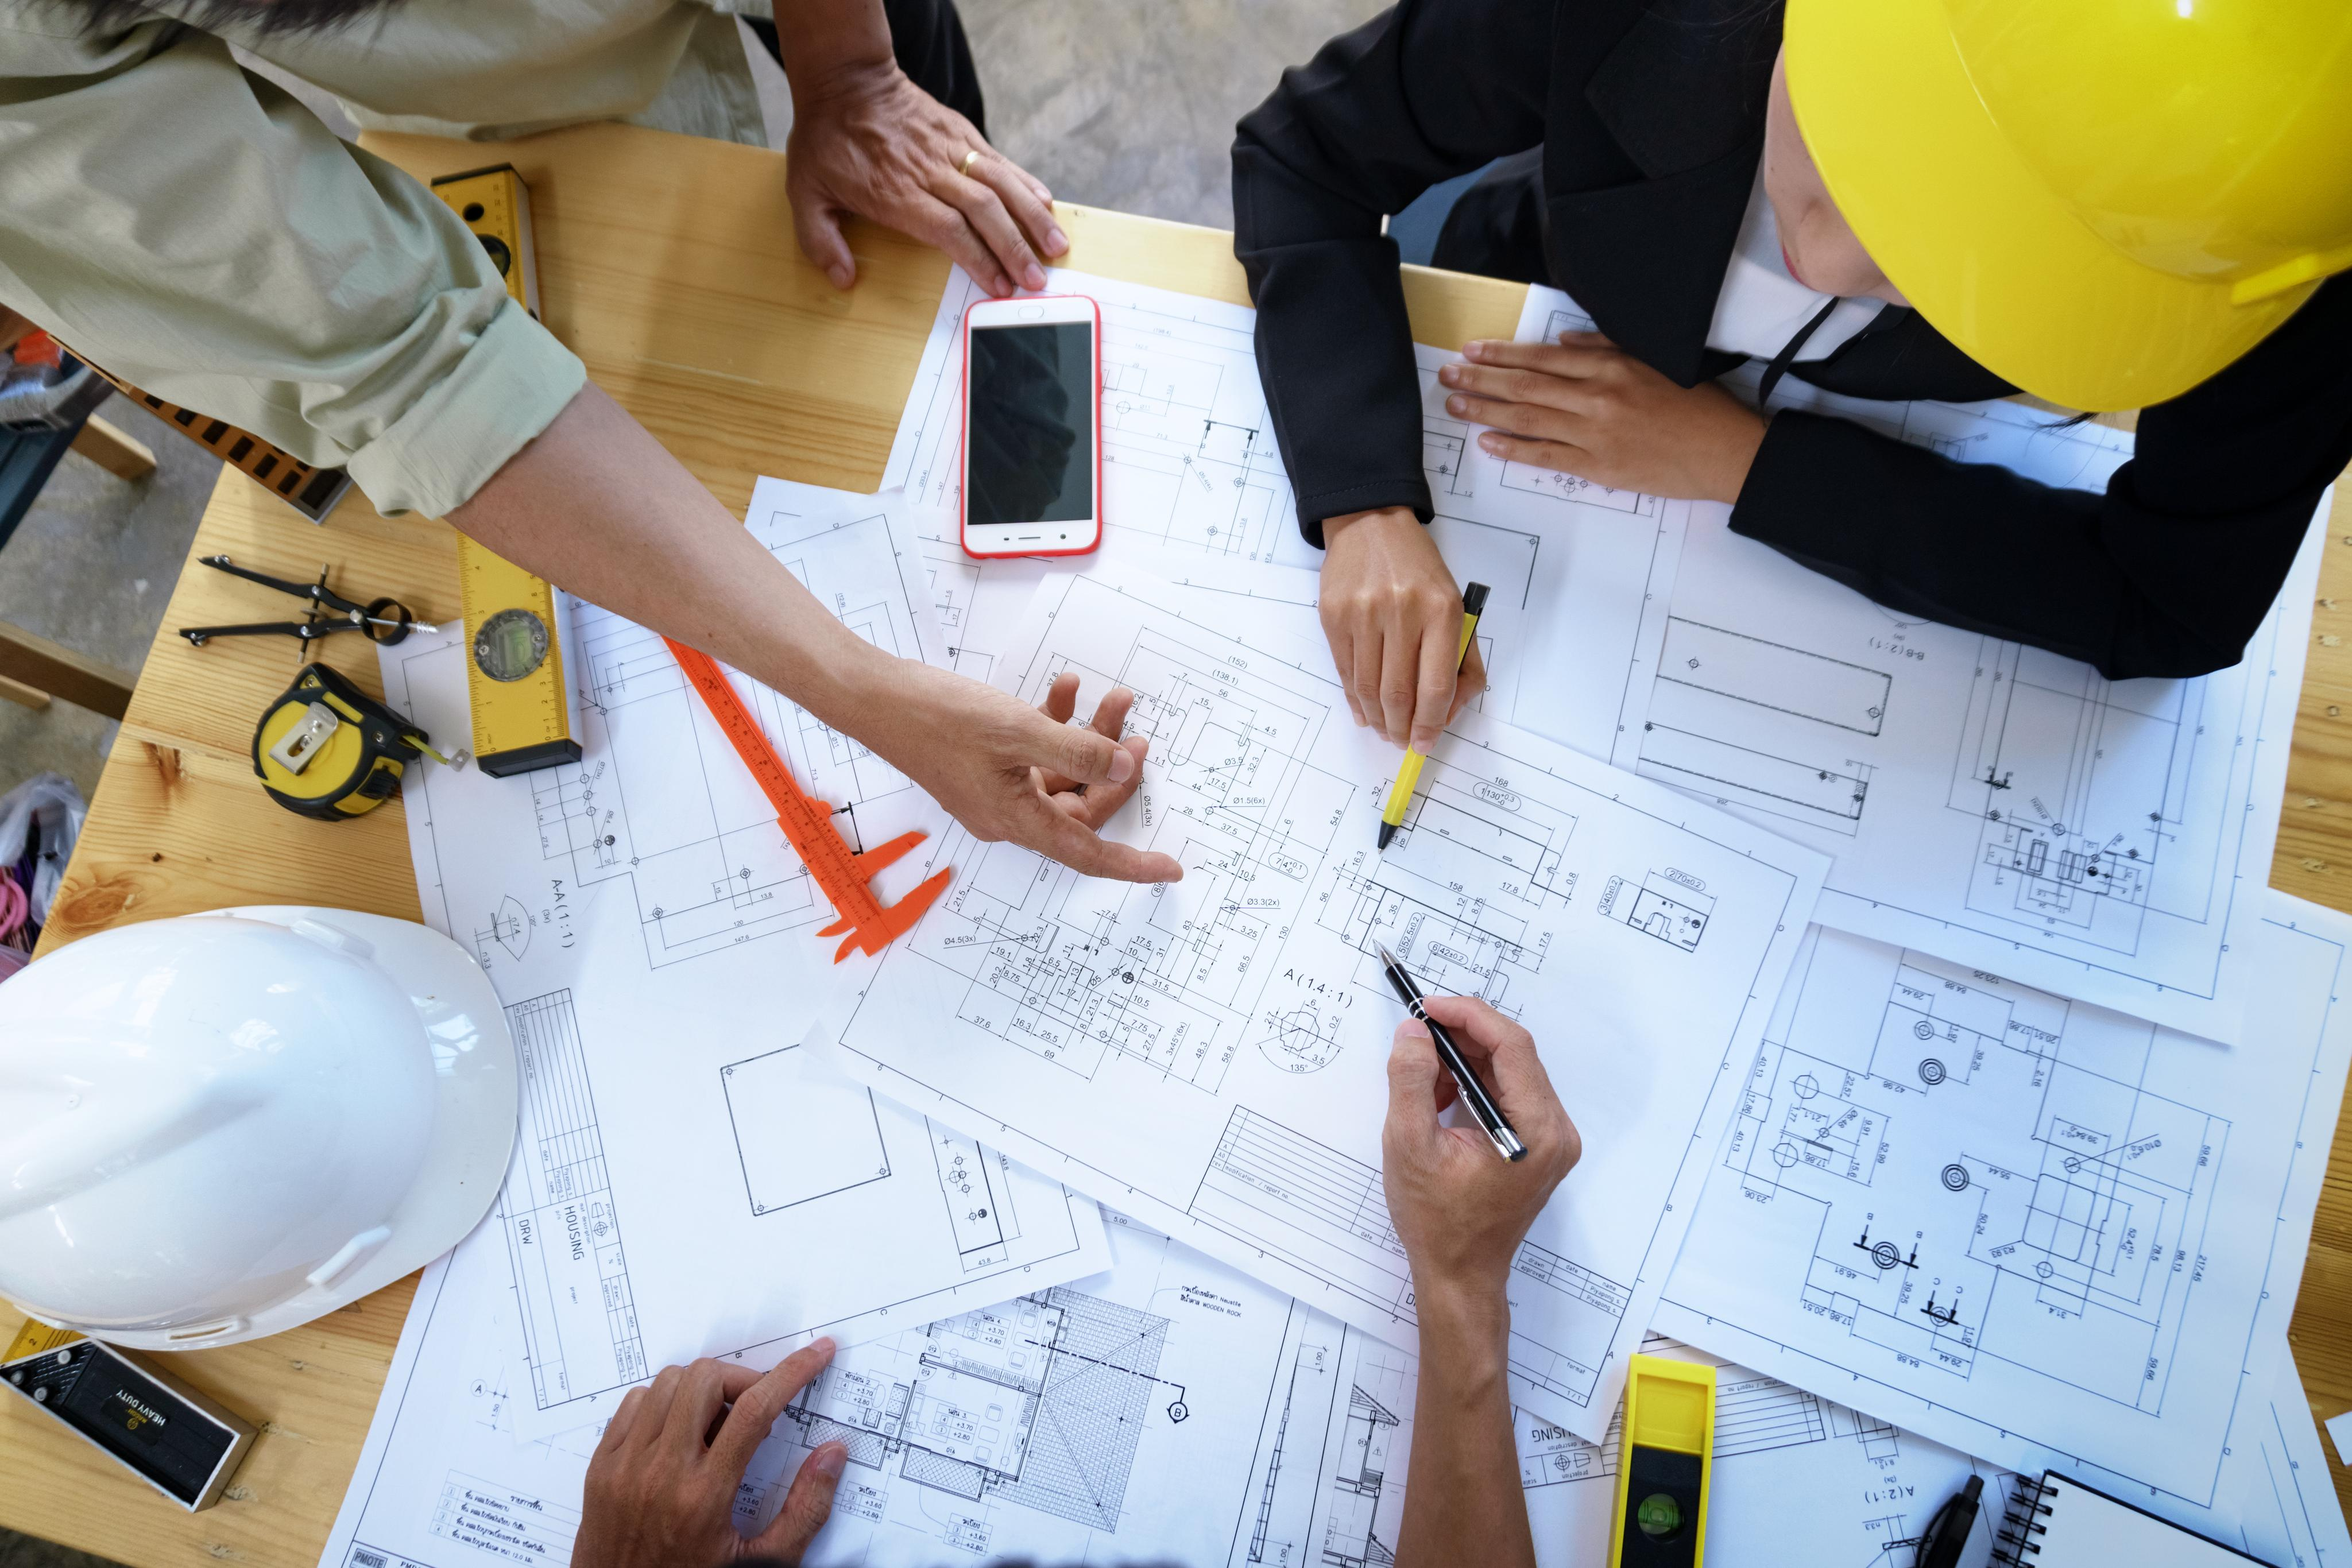 ame consulting engineers - 1000×625